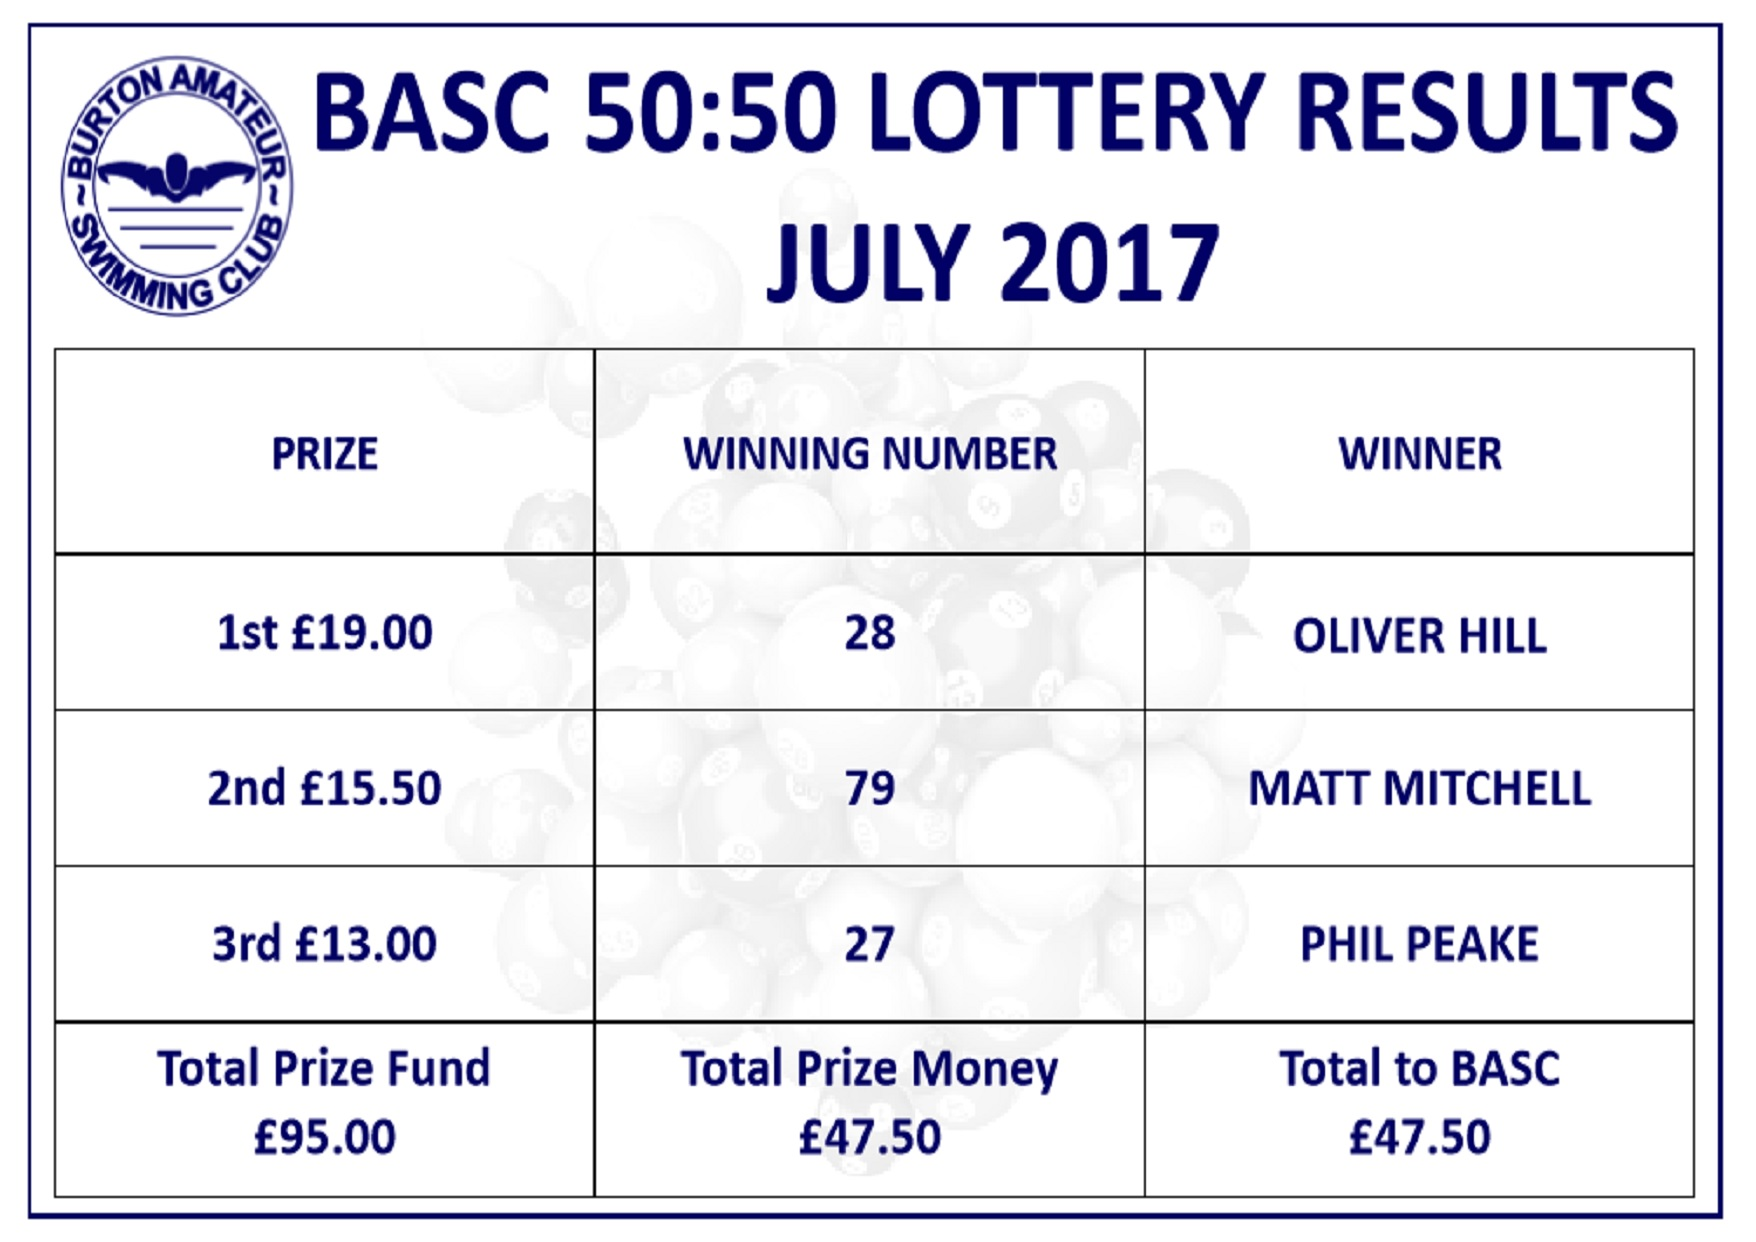 Burton Amateur Swimming Club Lottery Results July 2017